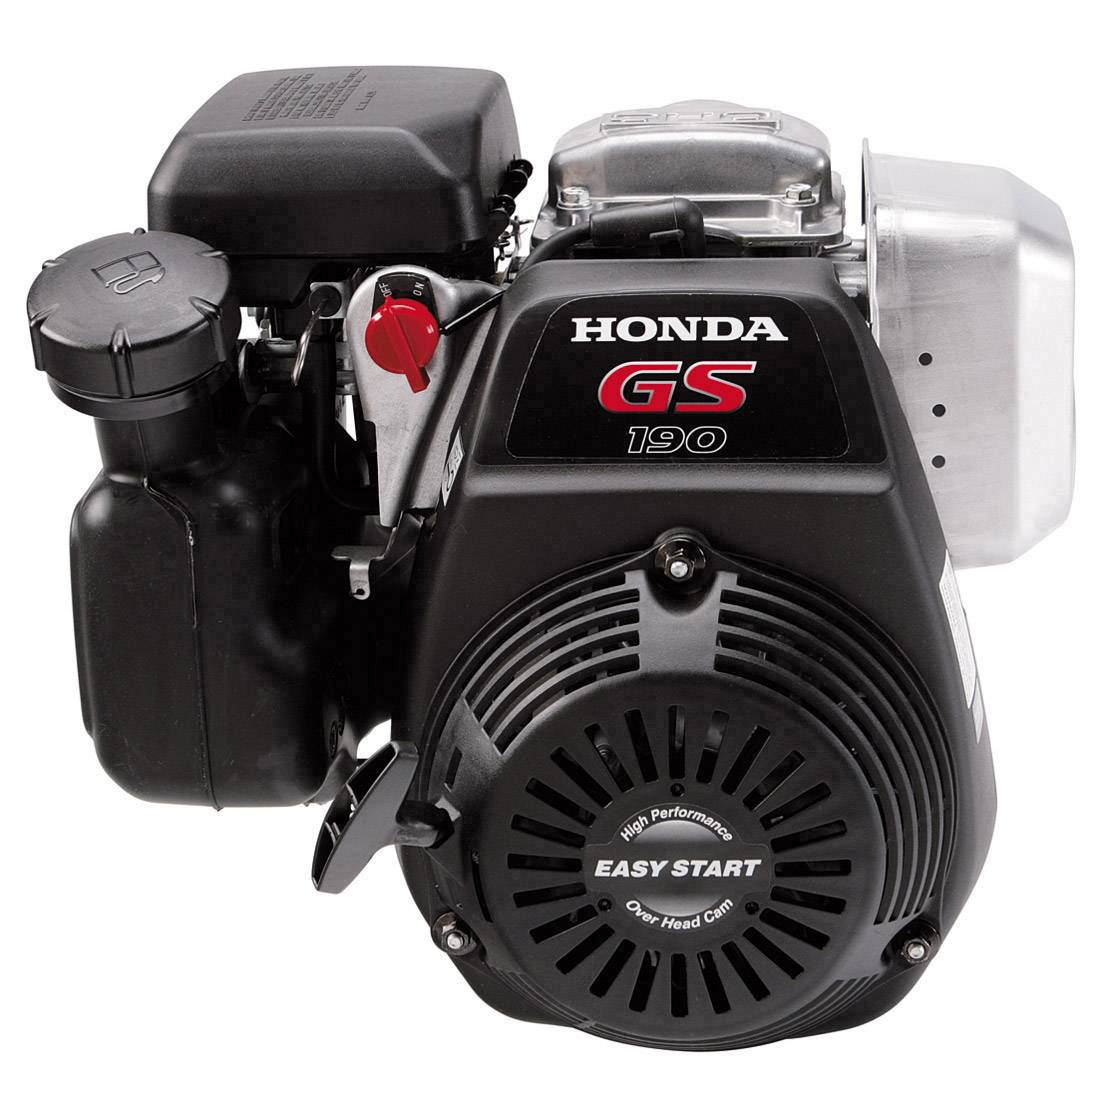 Honda GS190 Air-Cooled 4-Stroke OHC Engine